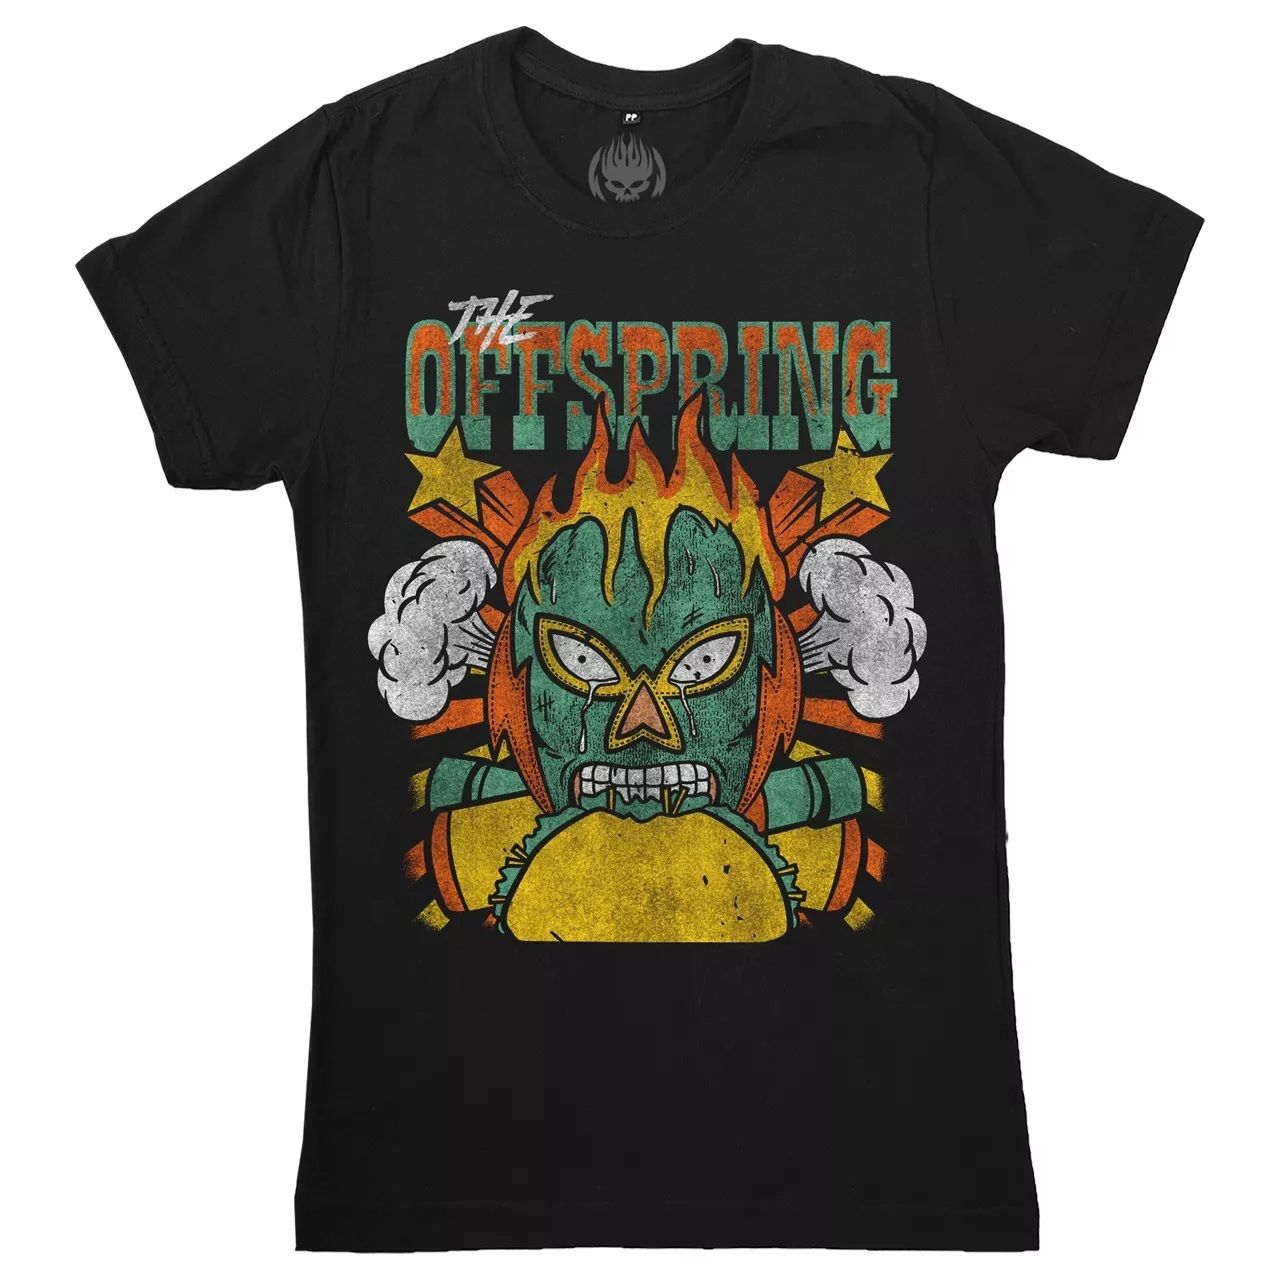 The Offspring - Mask Tour